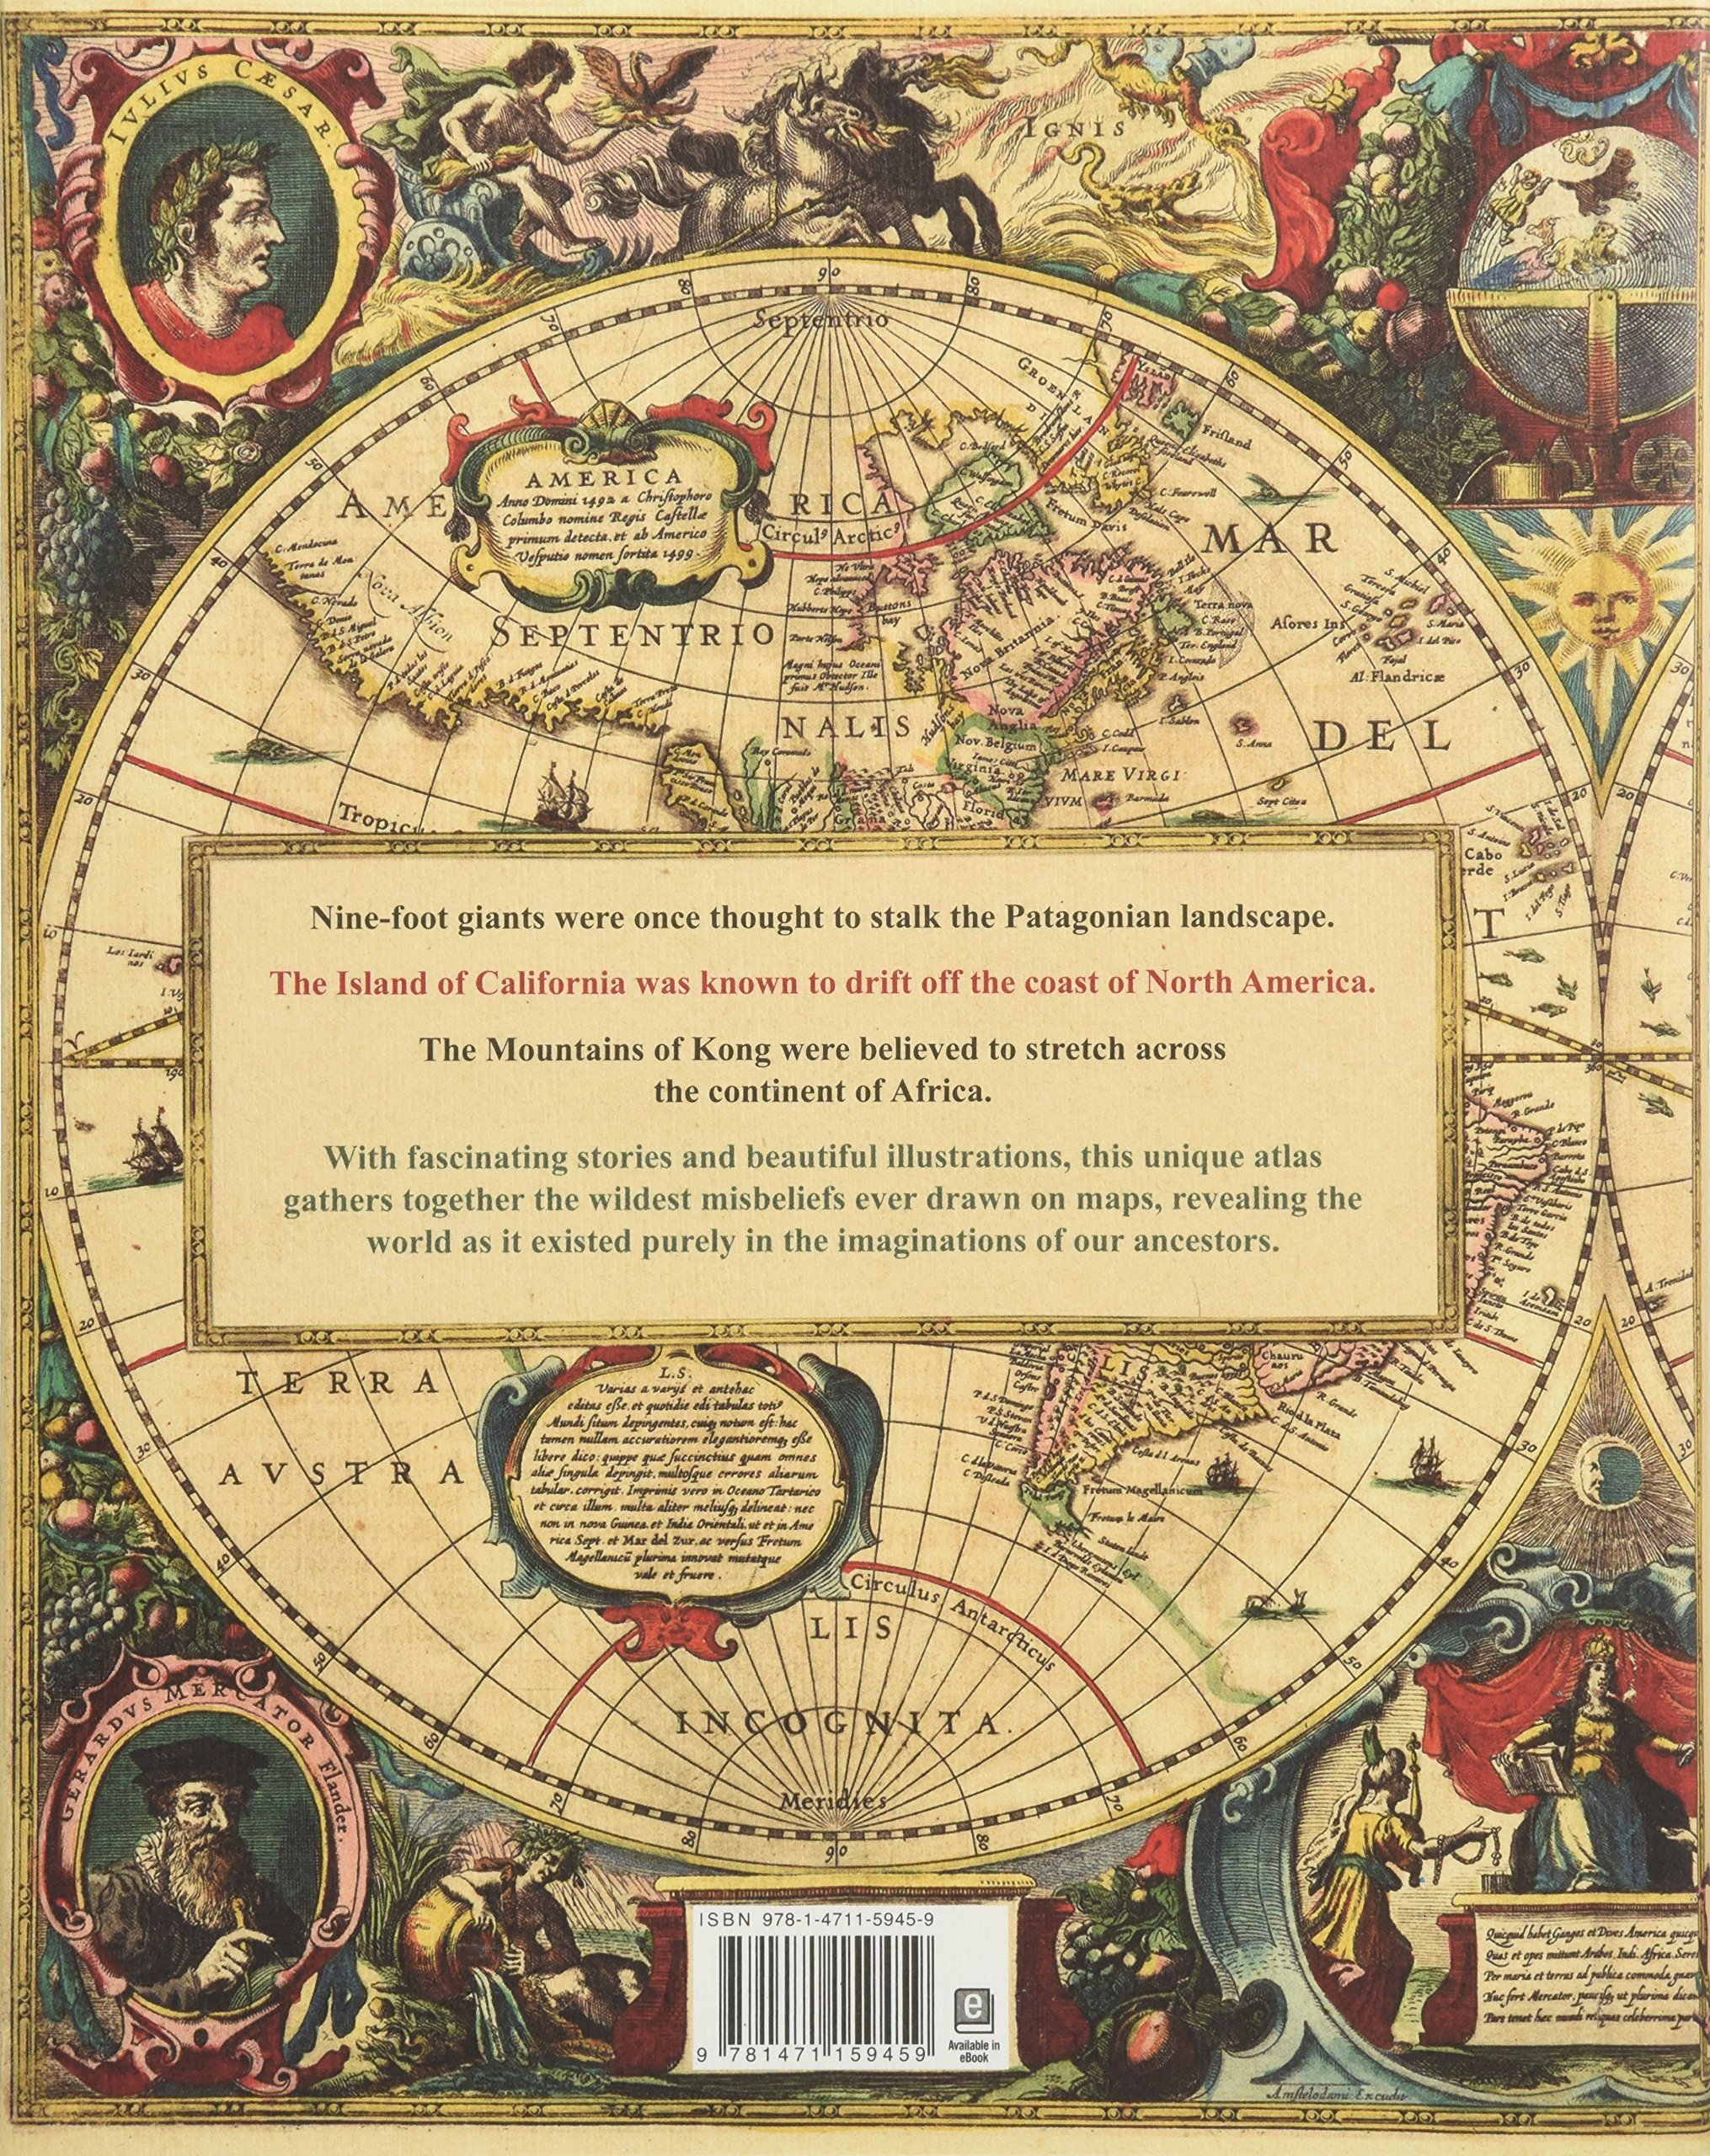 Tomtom Australia Map 945.The Phantom Atlas The Greatest Myths Lies And Blunders On Maps